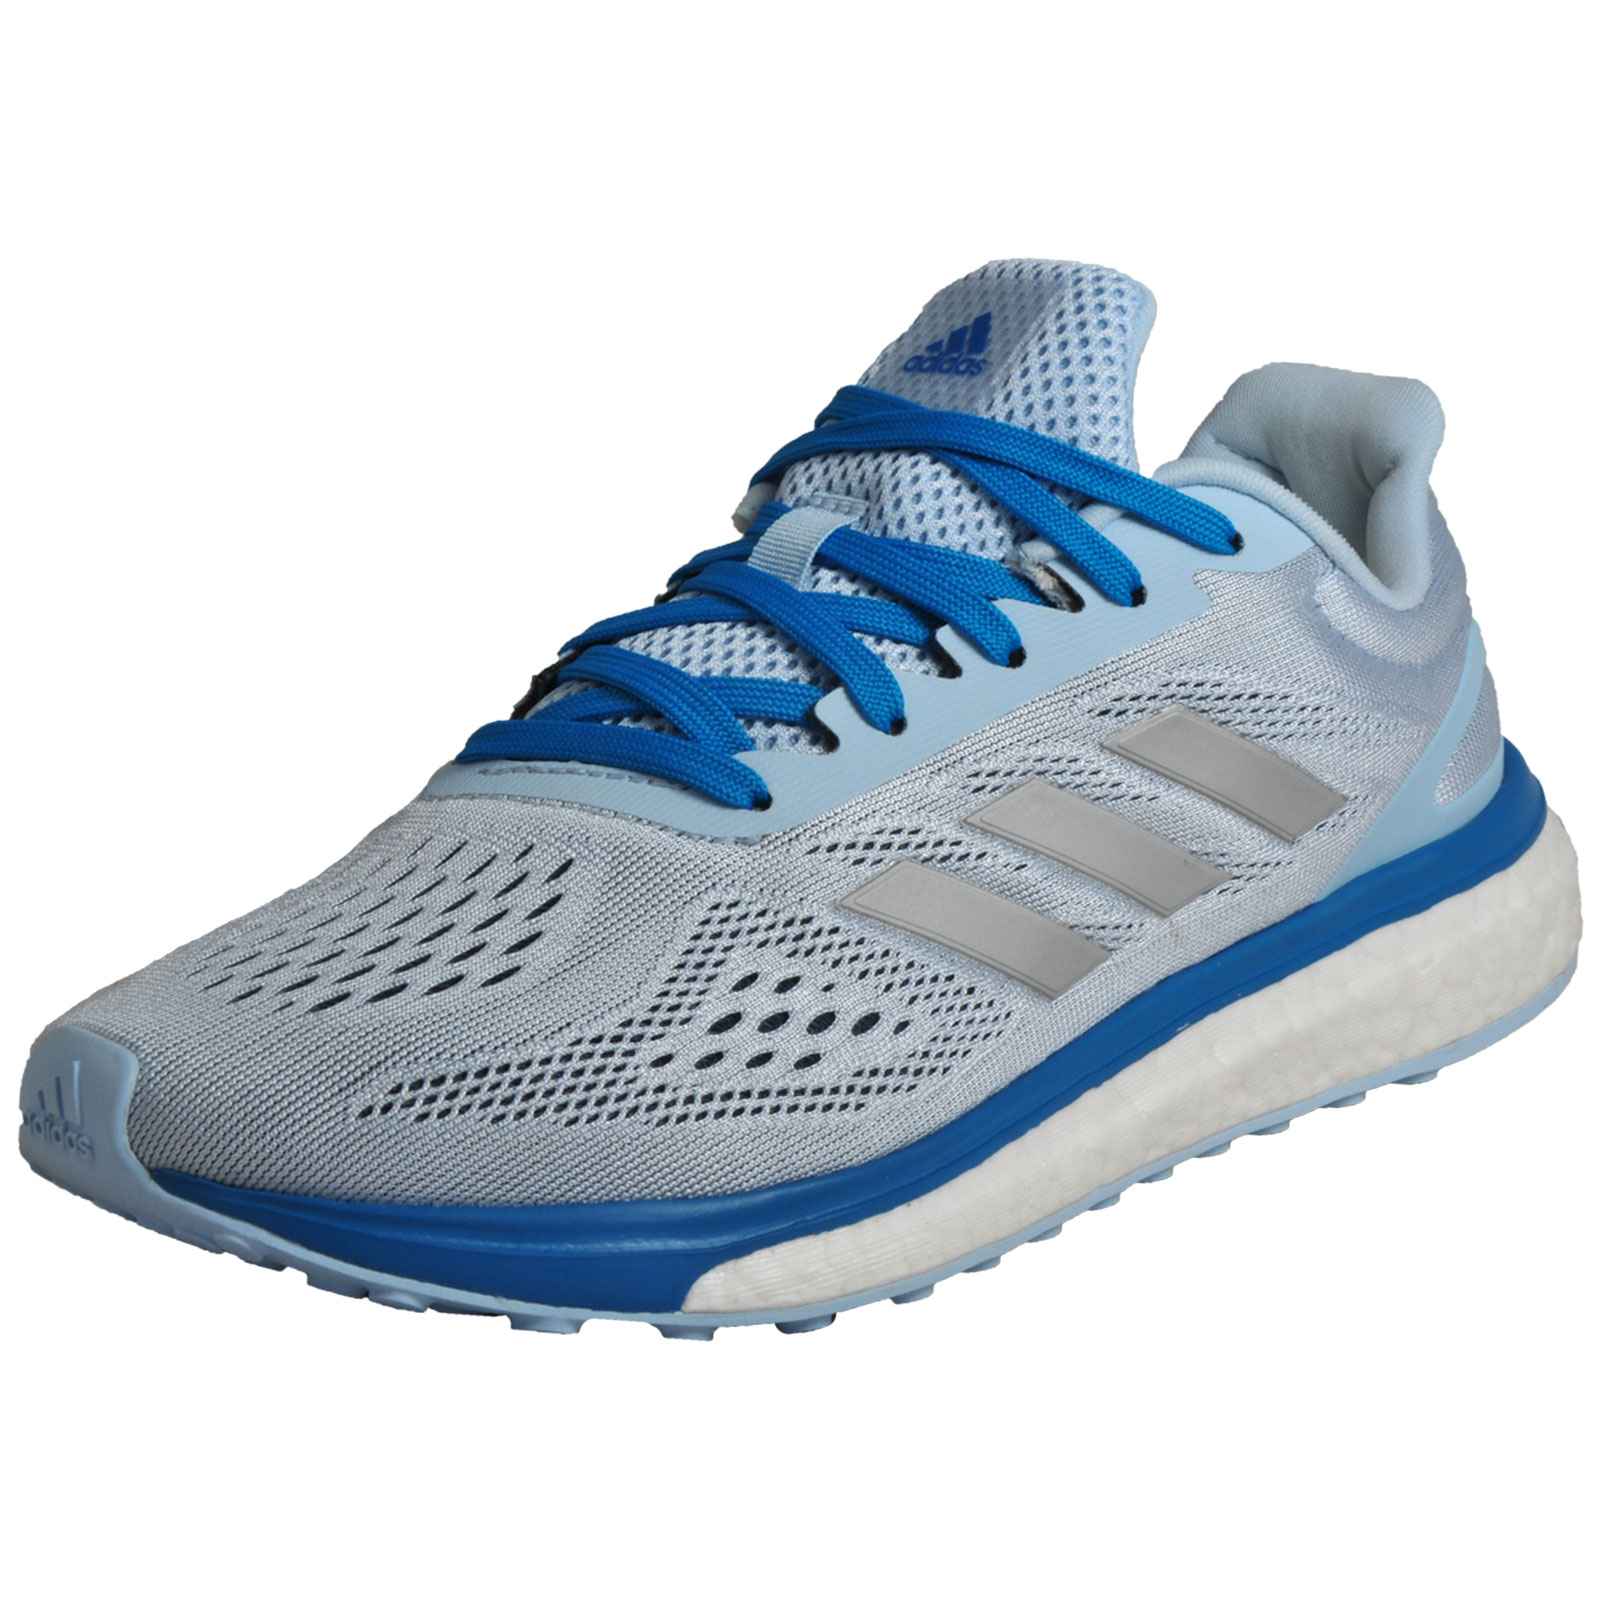 ec58ade92bd Details about Adidas Response Lt Boost Womens Premium Running Shoes Trainers  Silver Blue